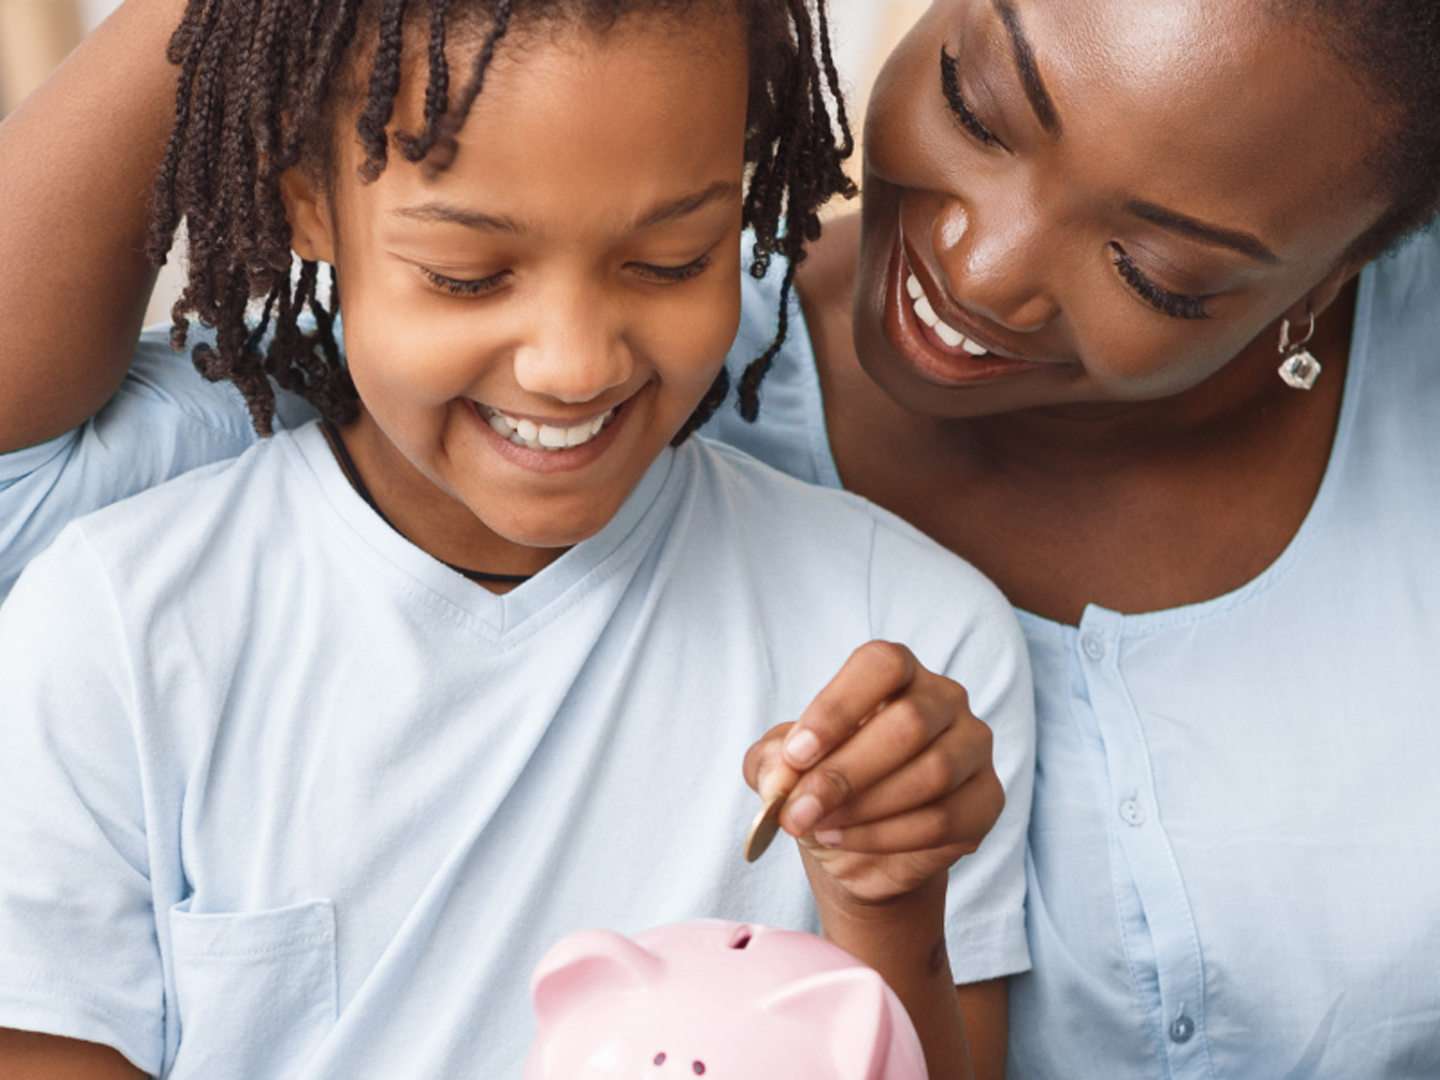 woman and child depositing coins in pink piggy bank representing Sterling Personal Savings